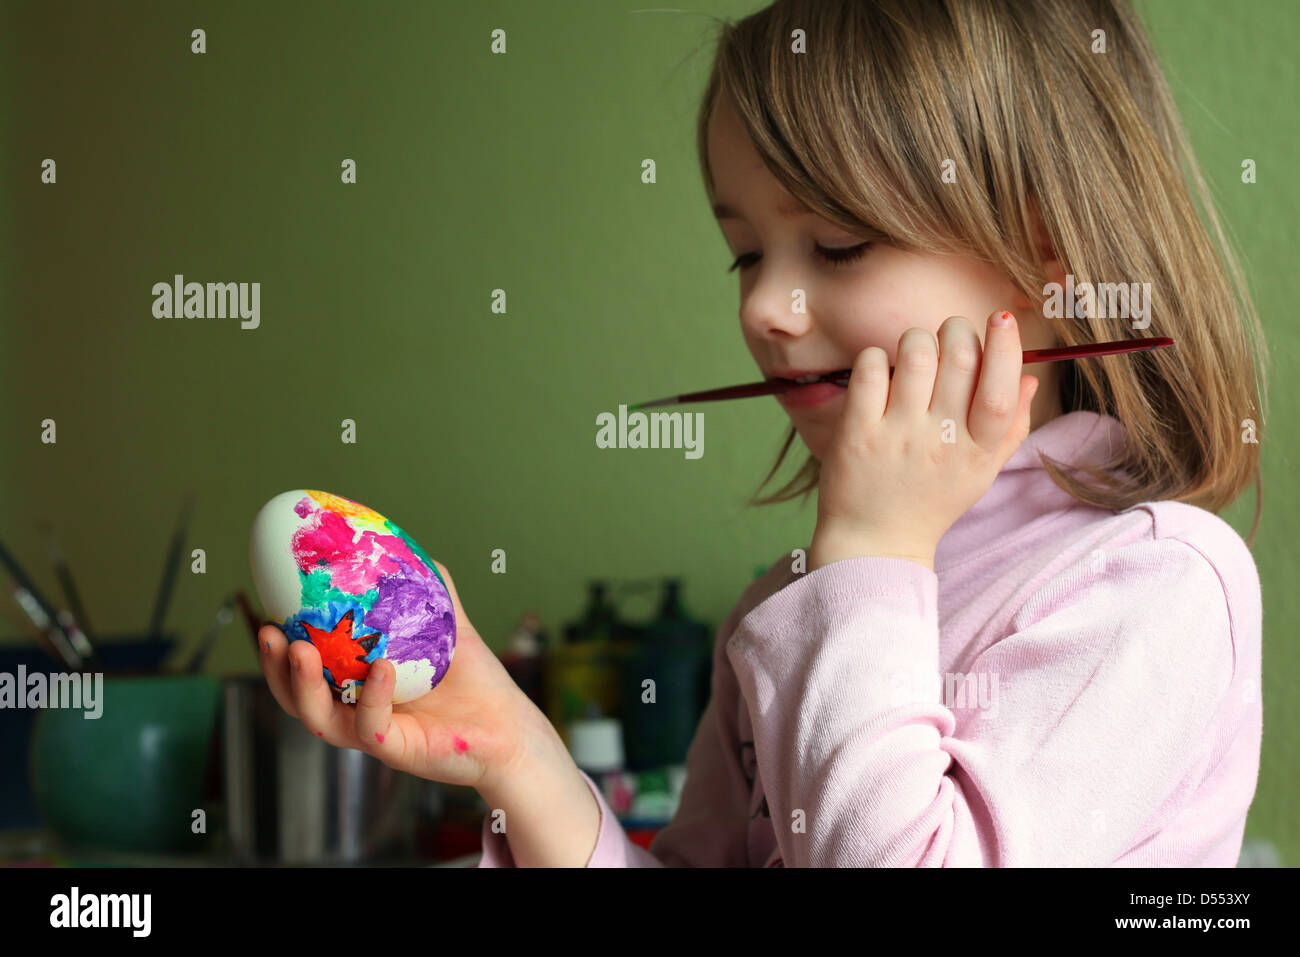 A happy young German girl painting eggs at home for Easter. Leipzig, Germany, Europe. Stock Photo